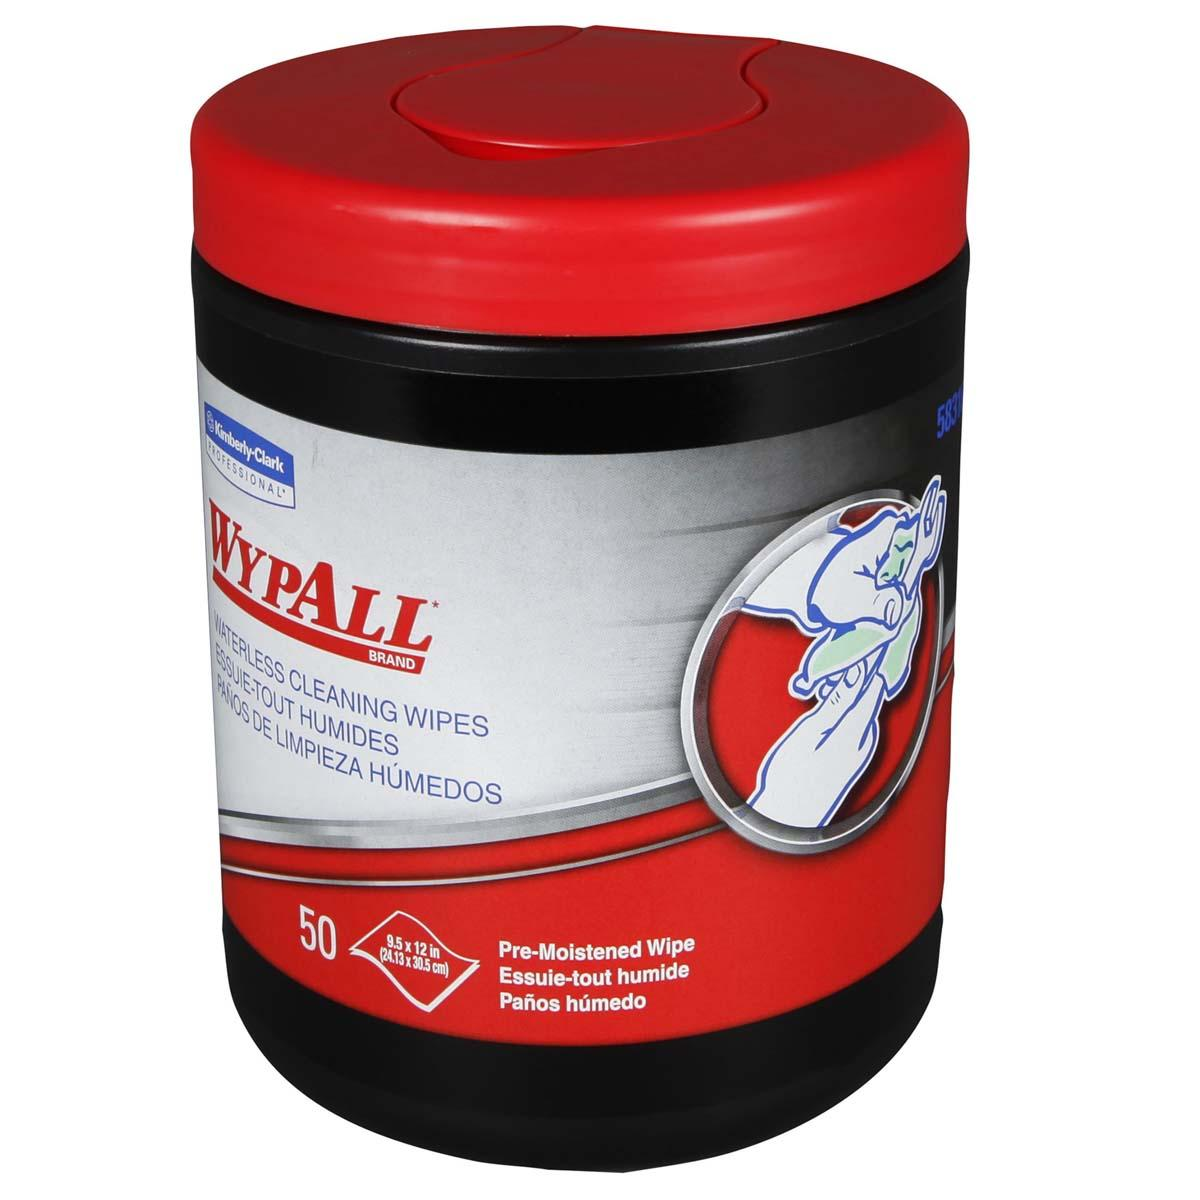 Wypall Waterless Industrial Cleaning Wipes (58310), Heavy Duty Moist Wipers, 8 Portable Canisters of 50 Sheets